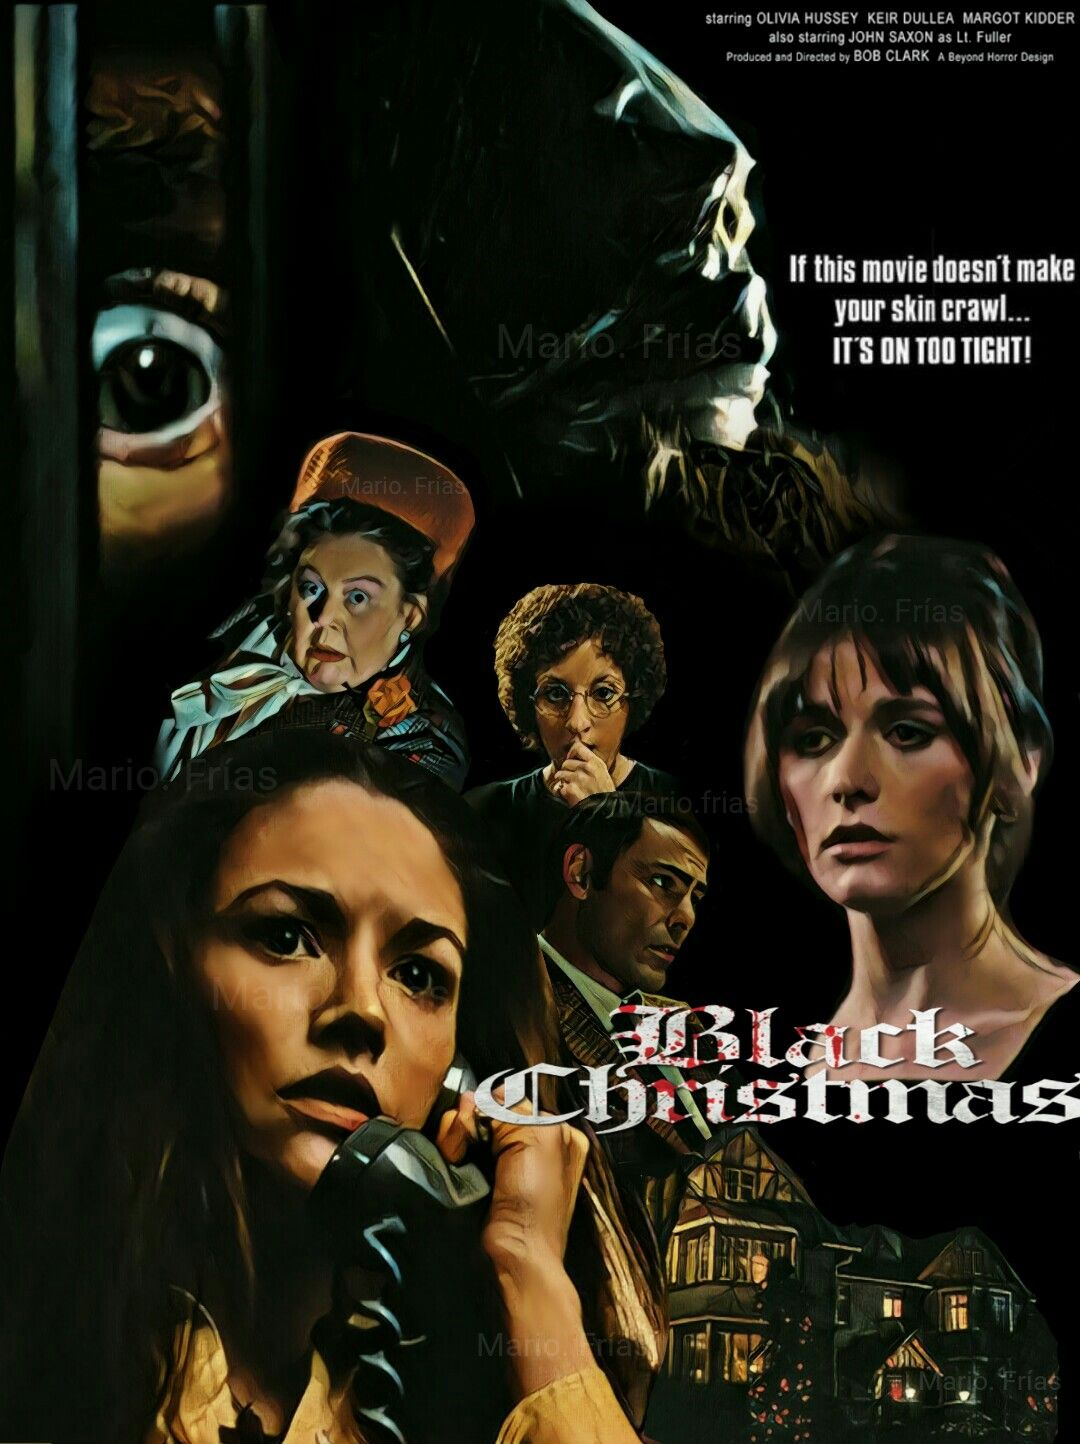 Black Christmas 1974 Horror Movie Slasher Fan Made Edit By Mario. Frías